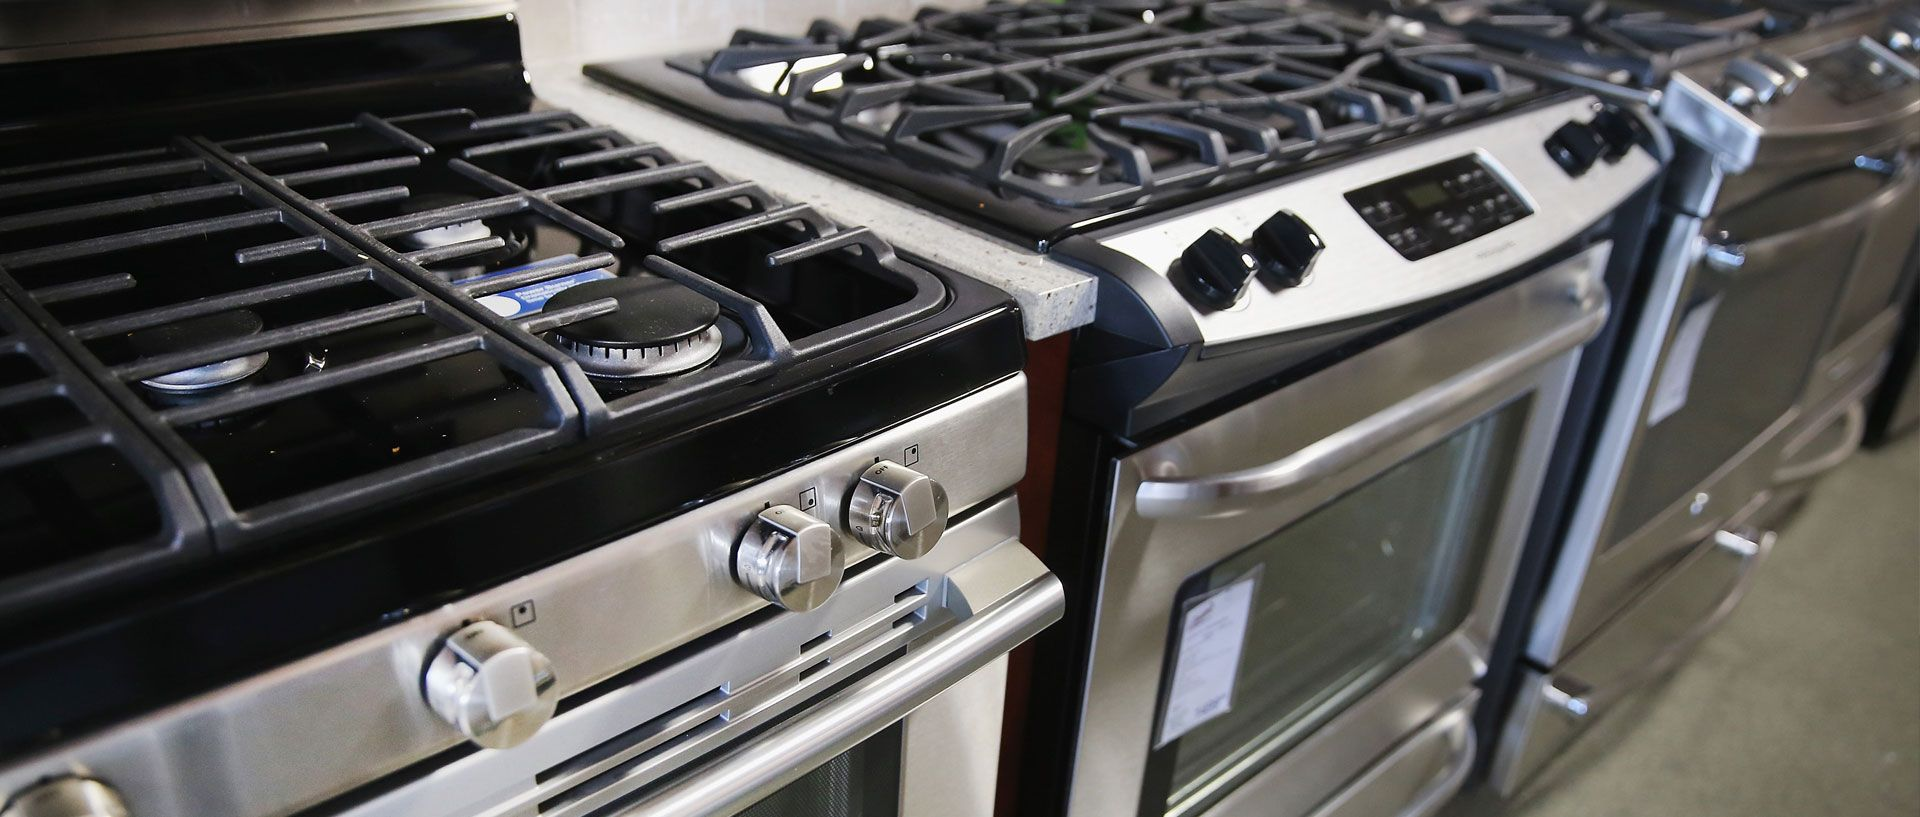 Best Gas Ranges from Consumer Reports\' Tests | Kitchen ...